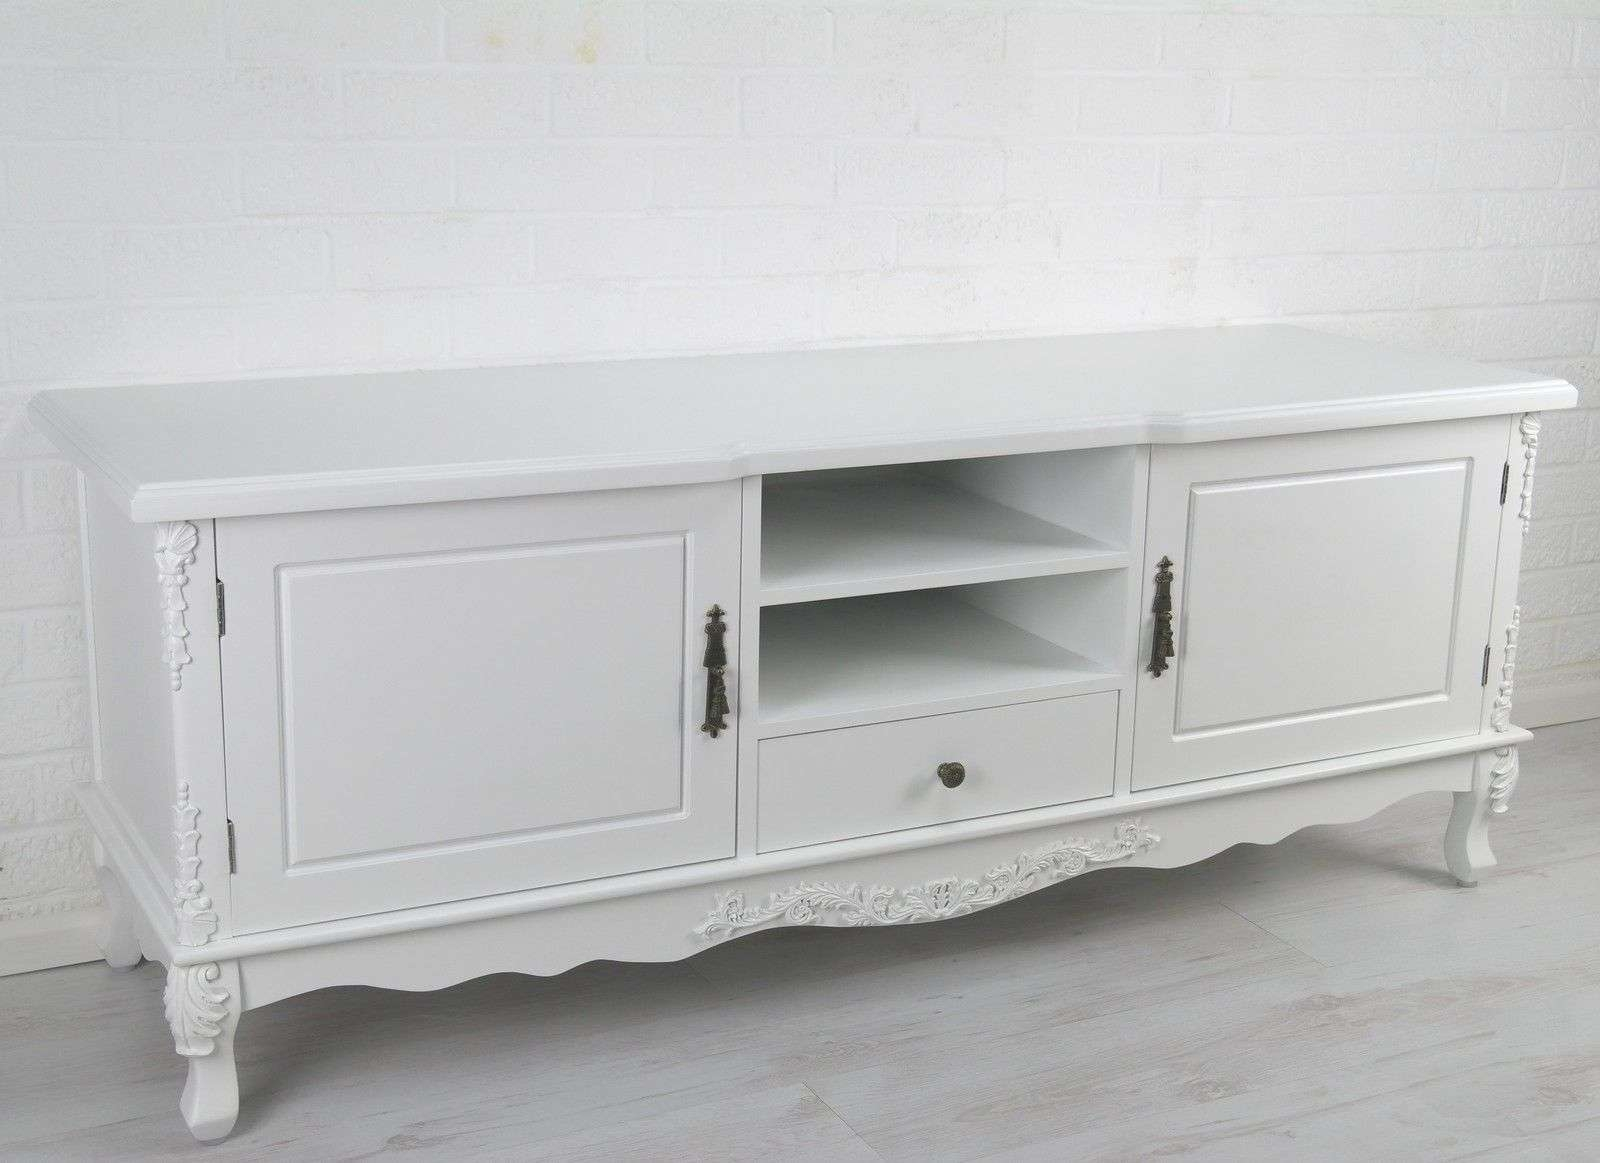 French Style White Large Cabinet Tv Unit Furniture – La Maison With Regard To French Tv Cabinets (View 20 of 20)